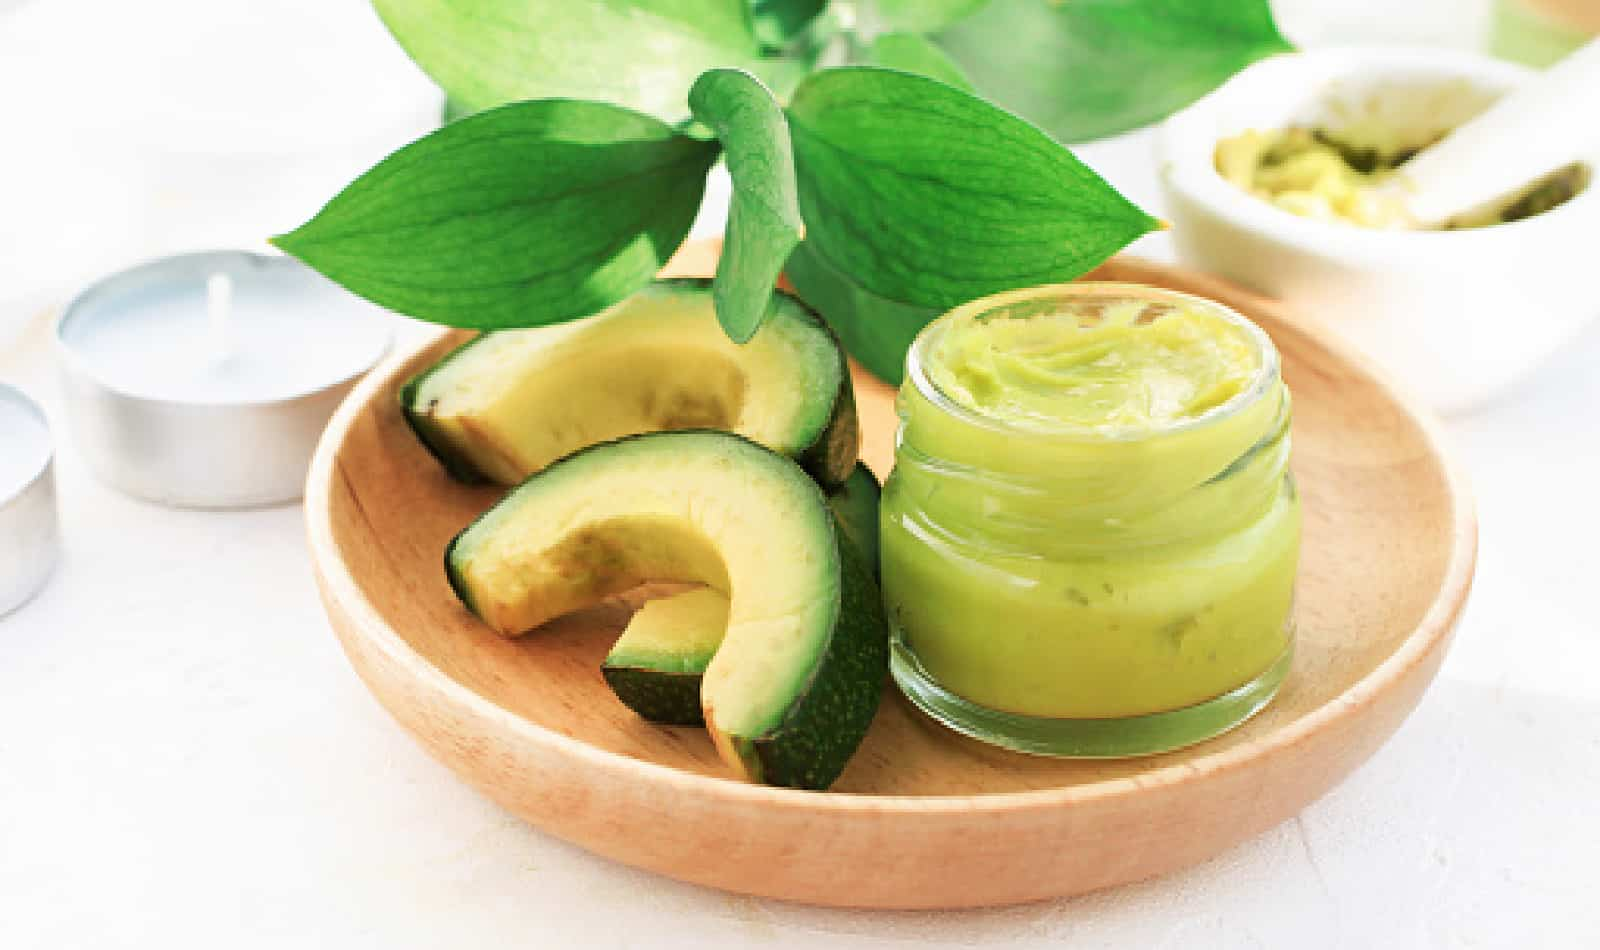 If you're looking for amazing avocado masks for hair, come on it! From at-home beauty DIYs to store-bought ideas, we've got you covered. Check it out!